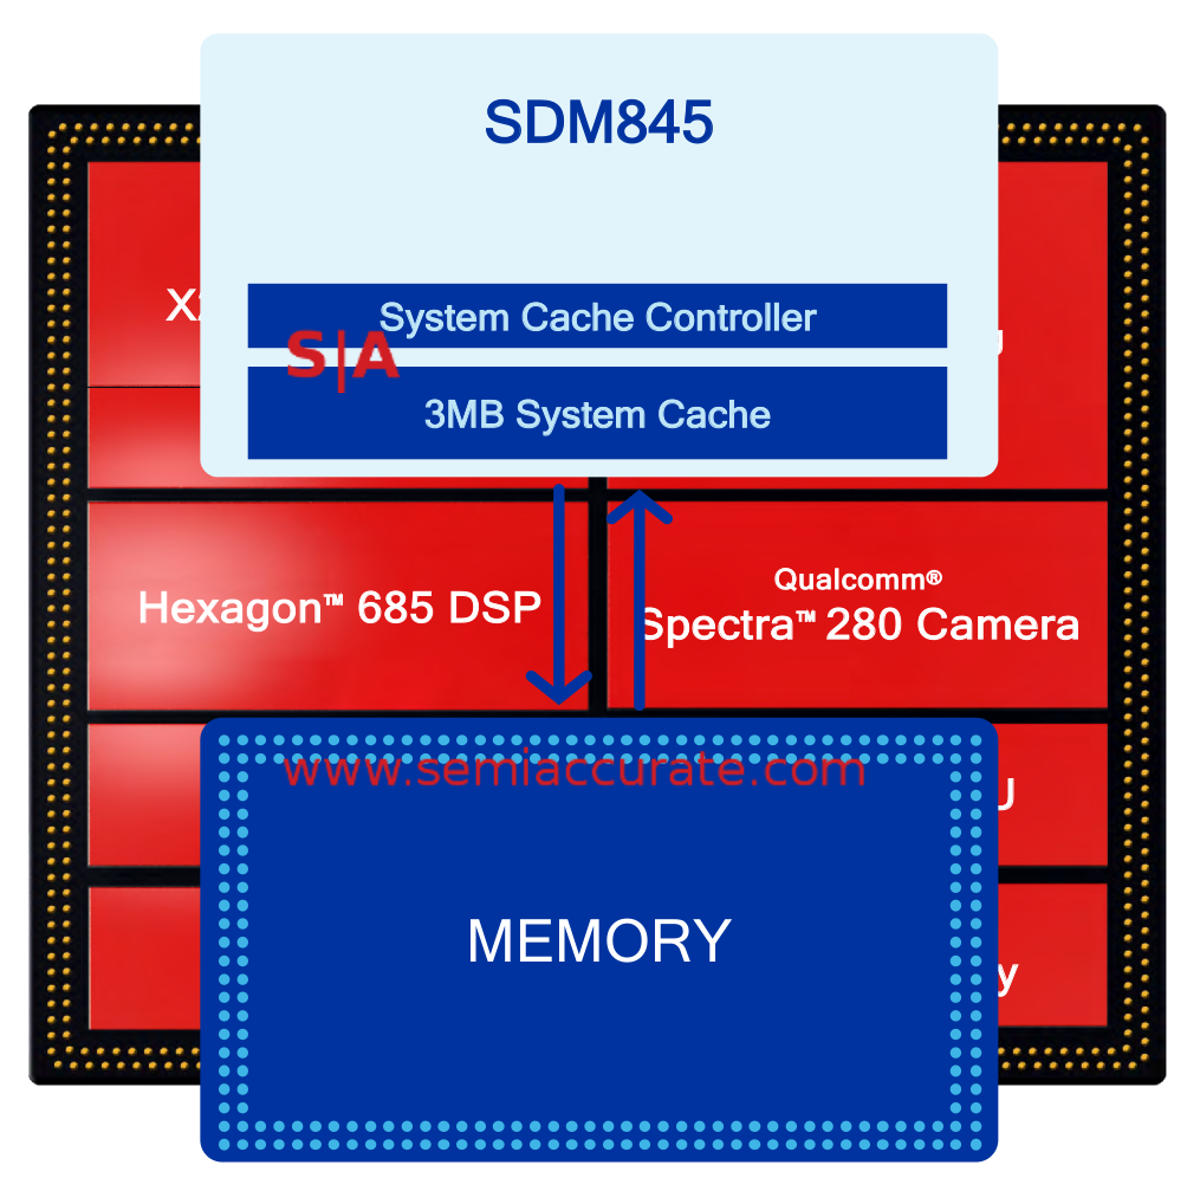 More on the Qualcomm Snapdragon 845 architecture - SemiAccurate